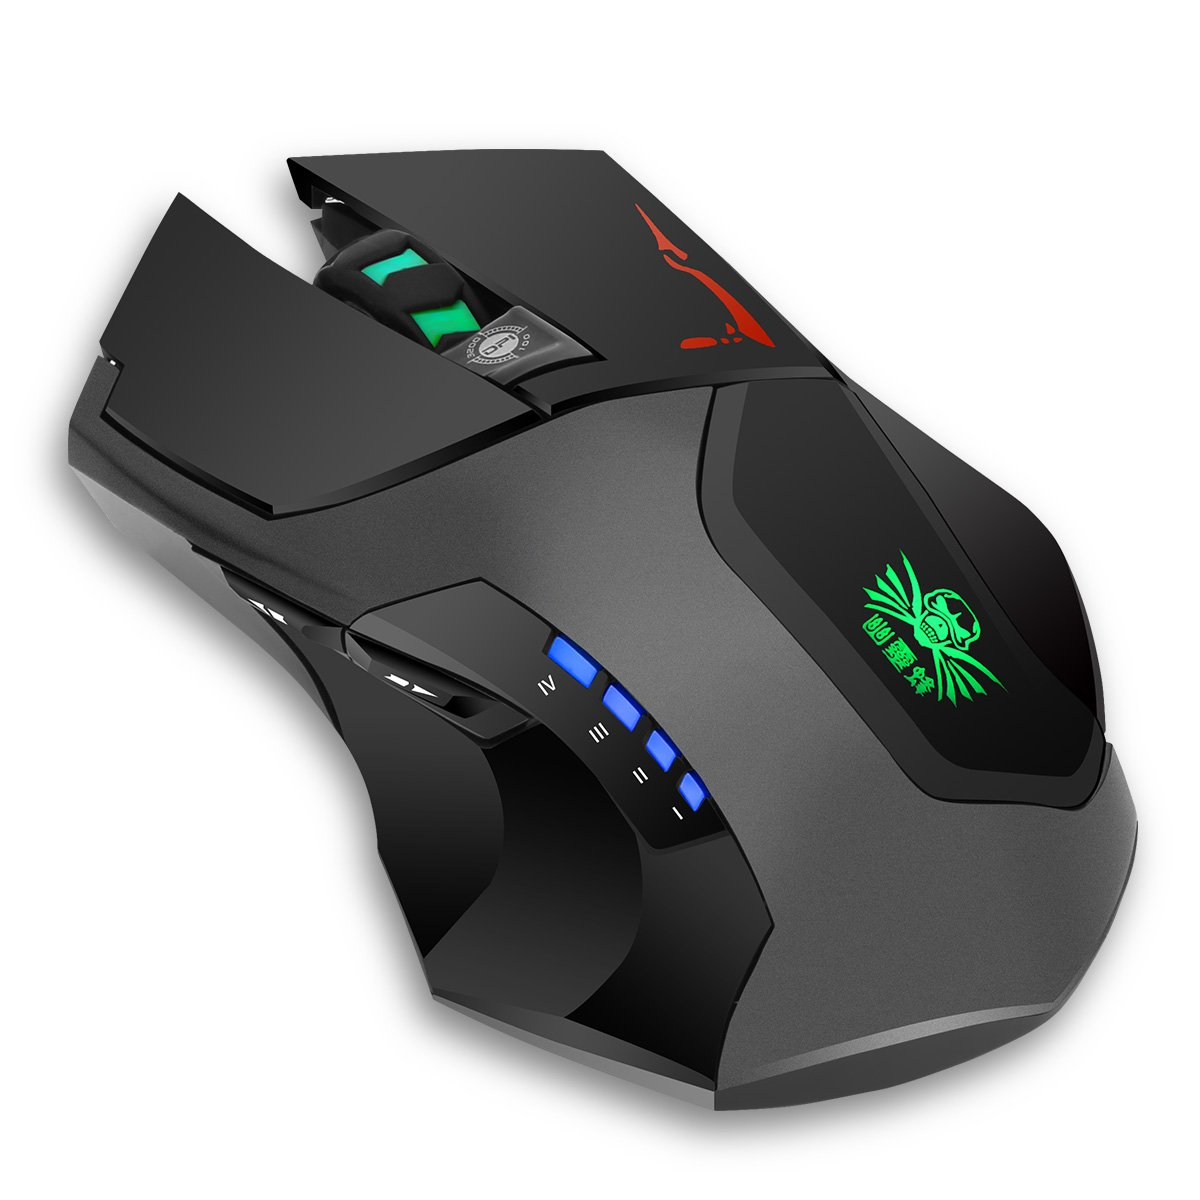 BAKTH Nano 2.4 Ghz Cordless Optical Gaming Mouse with 6 Buttons, Counter Weight Set, 4 DPI Adjustment Levels with Wireless USB Receiver + BAKTH Customized Large Mouse Mat